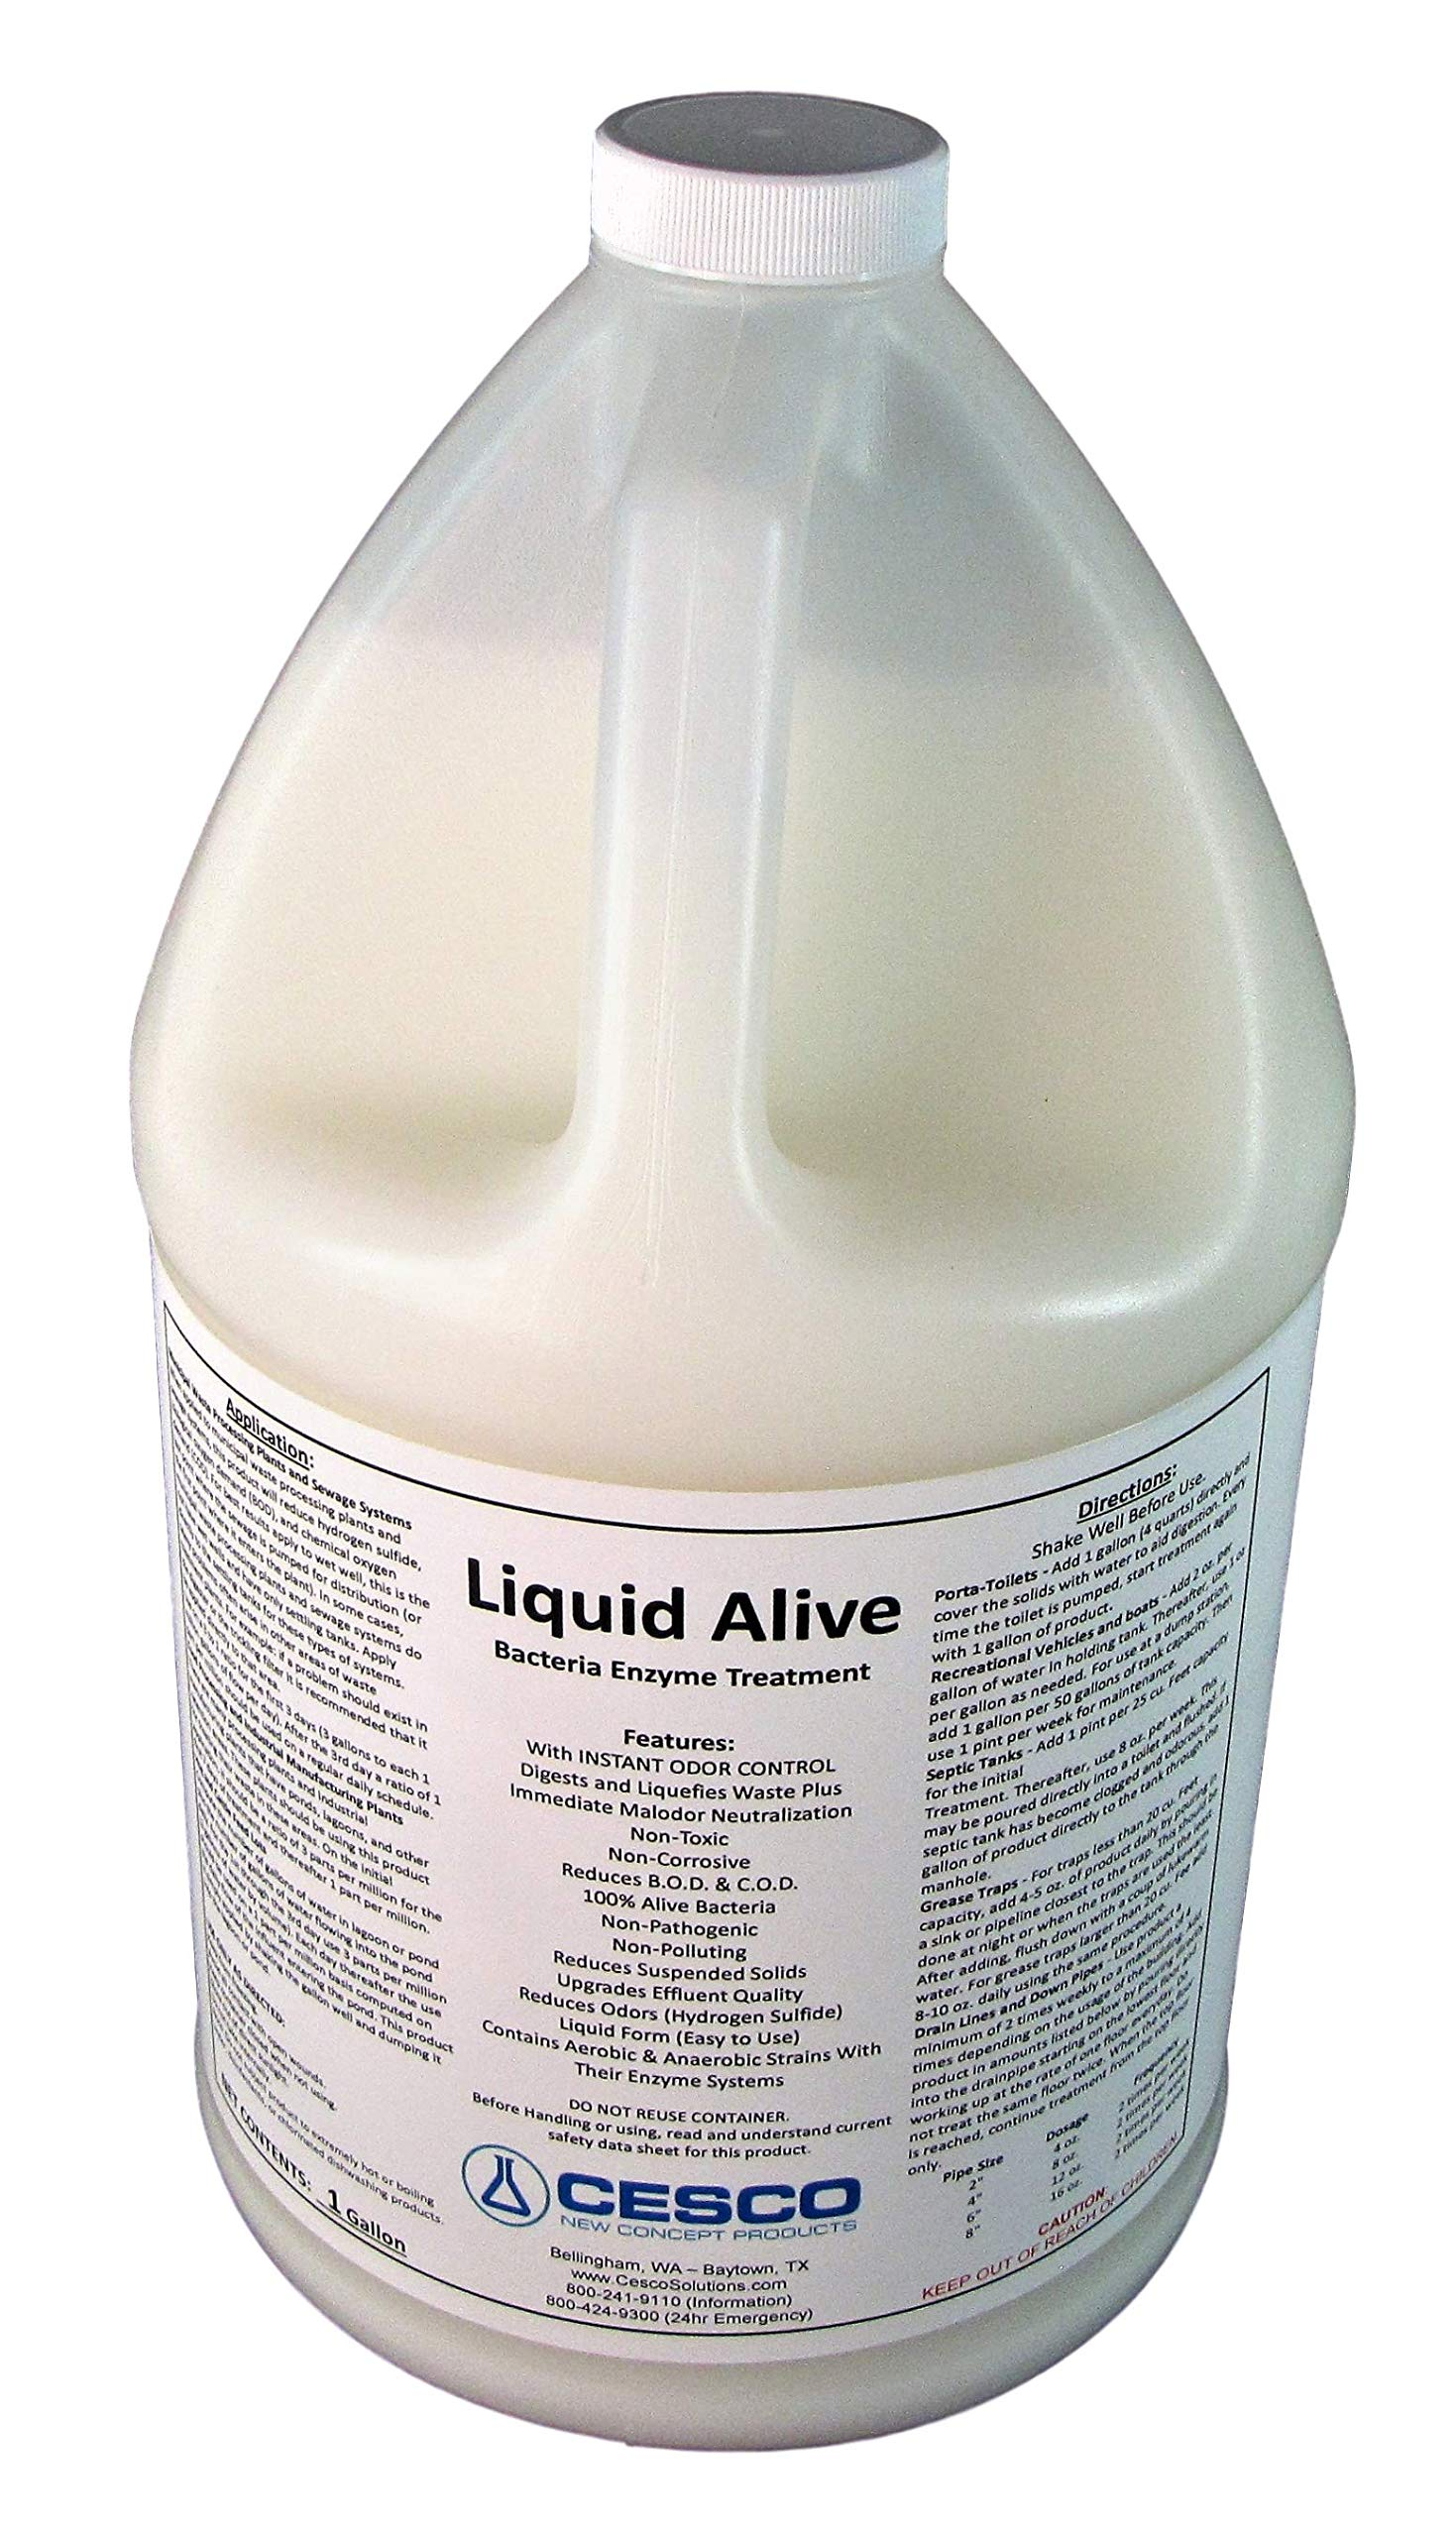 Liquid Alive Bacteria Enzyme Treatment - for Septic RV Boat - Odor Digester - 1 Gallon